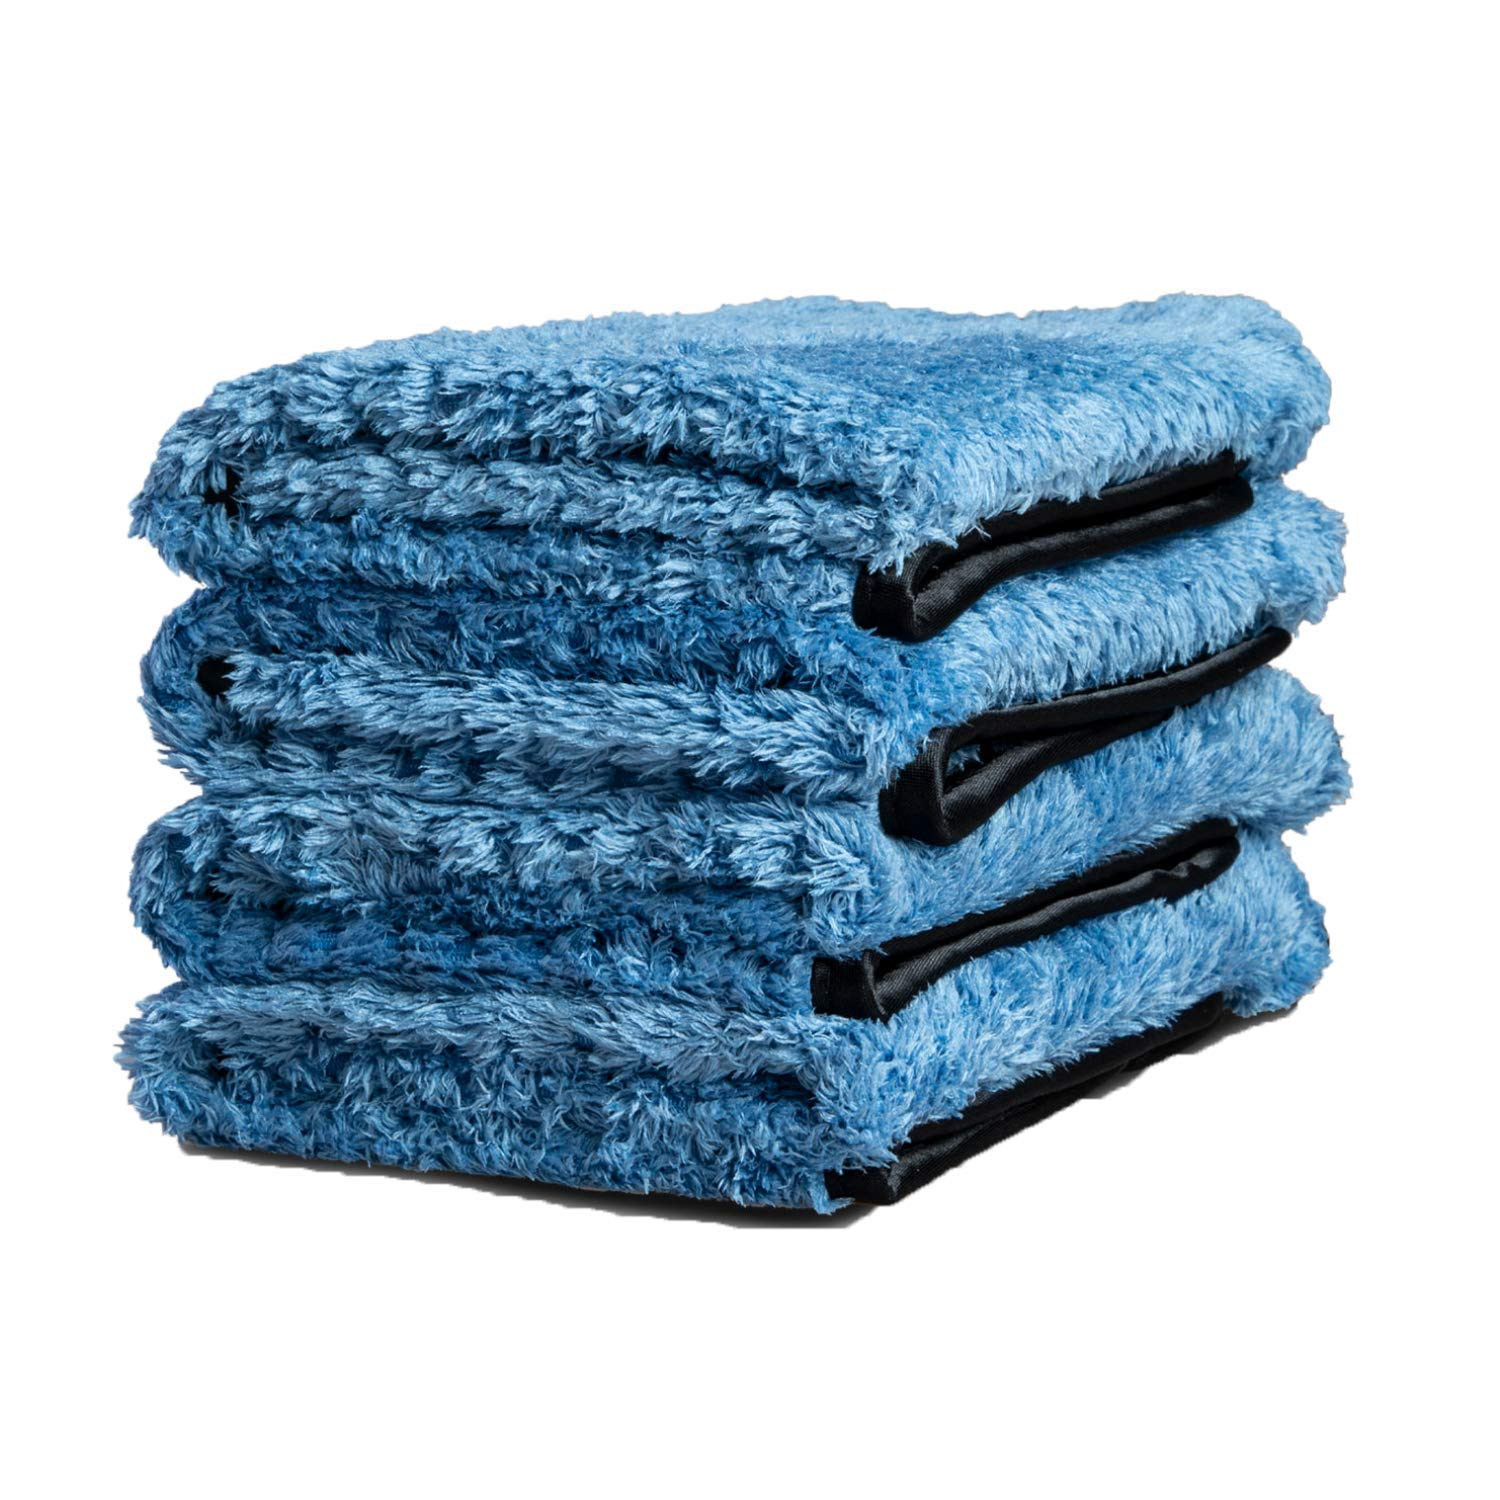 Adam's Pluffle Towel - A Microfiber Fabric Blend from Our Single Soft Towel & Waffle Weave Pattern from Our Waterless Wash Cloth - 16x16 Auto Detailing Rag W/ 490 GSM for Scratch Free (4 Pack)